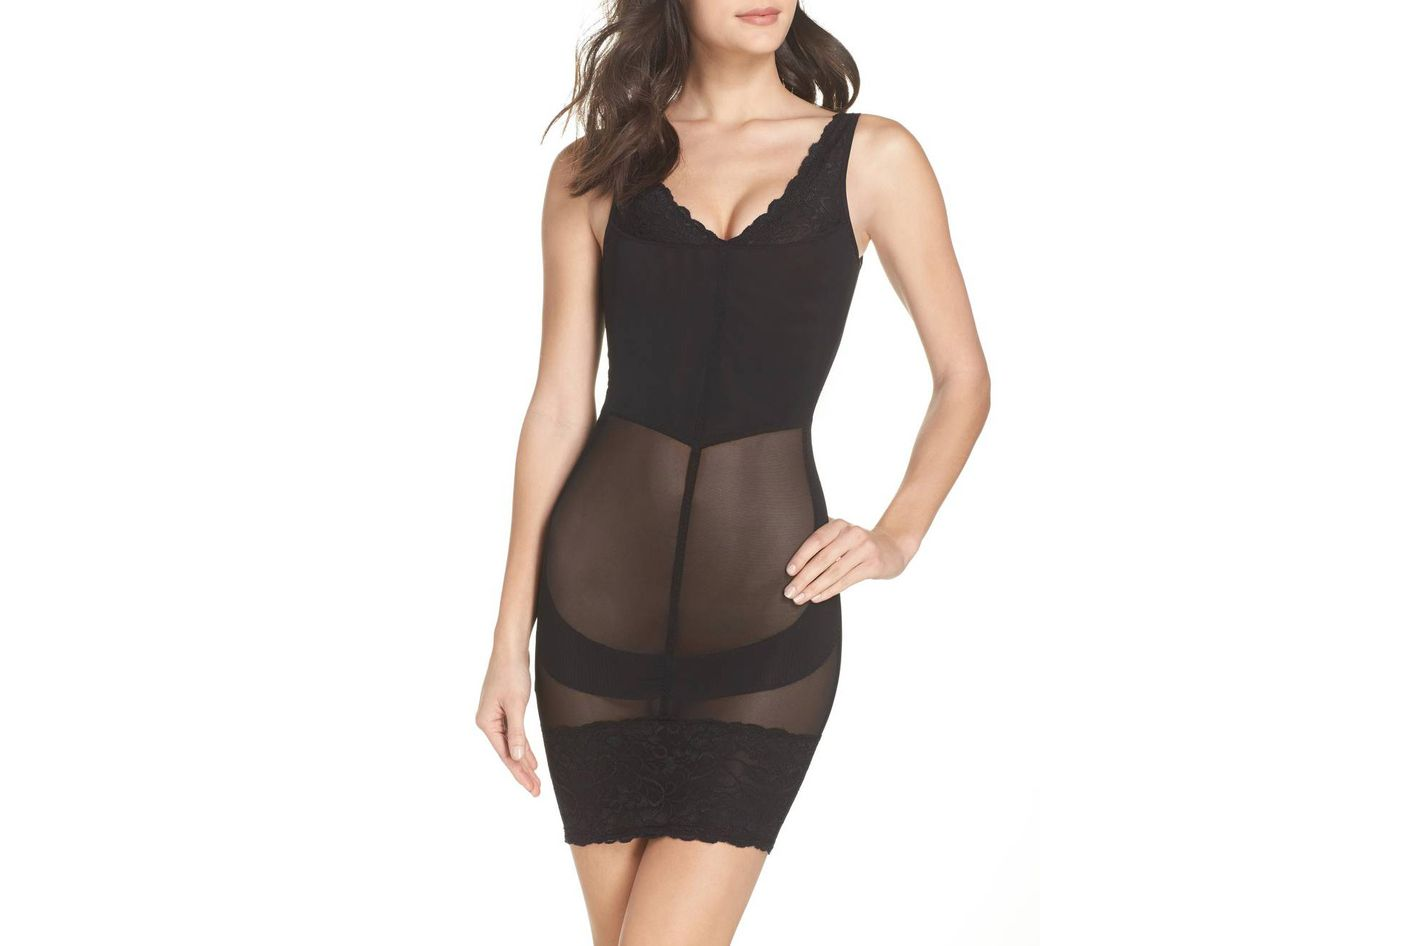 f58fc3232 MAGIC BODYFASHION Super Control Lace Slip at Nordstrom